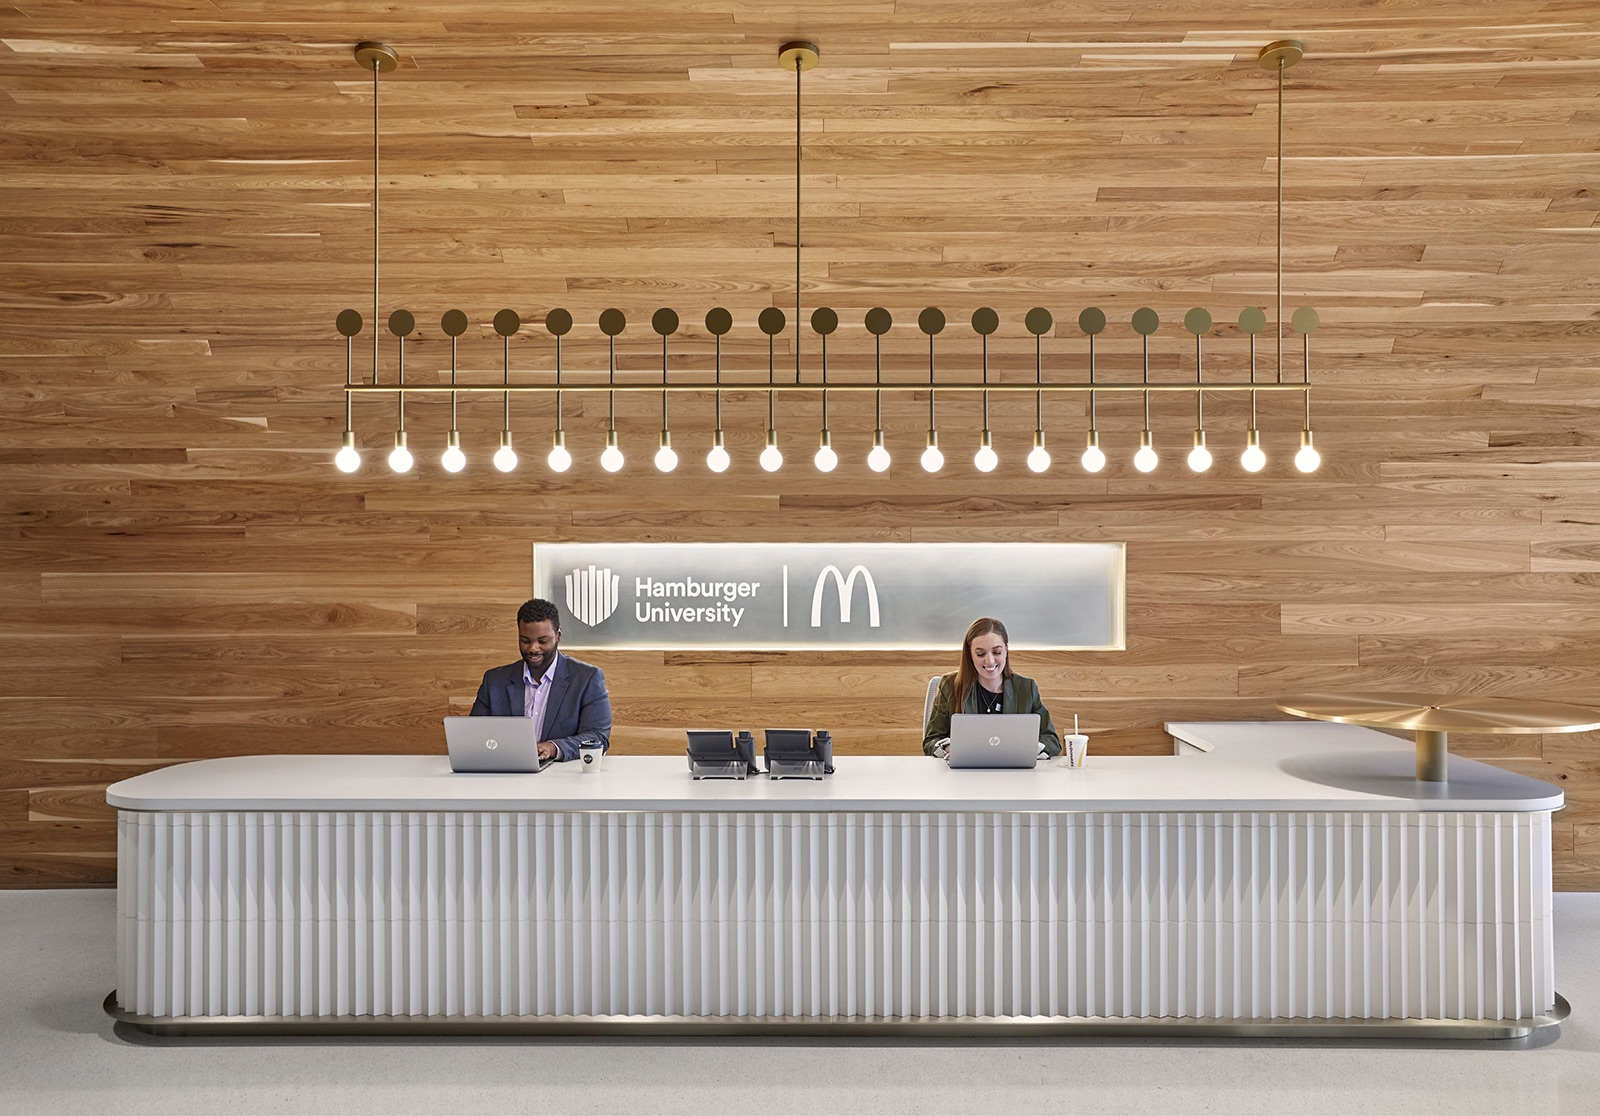 mcdonalds-chicago-hq-7